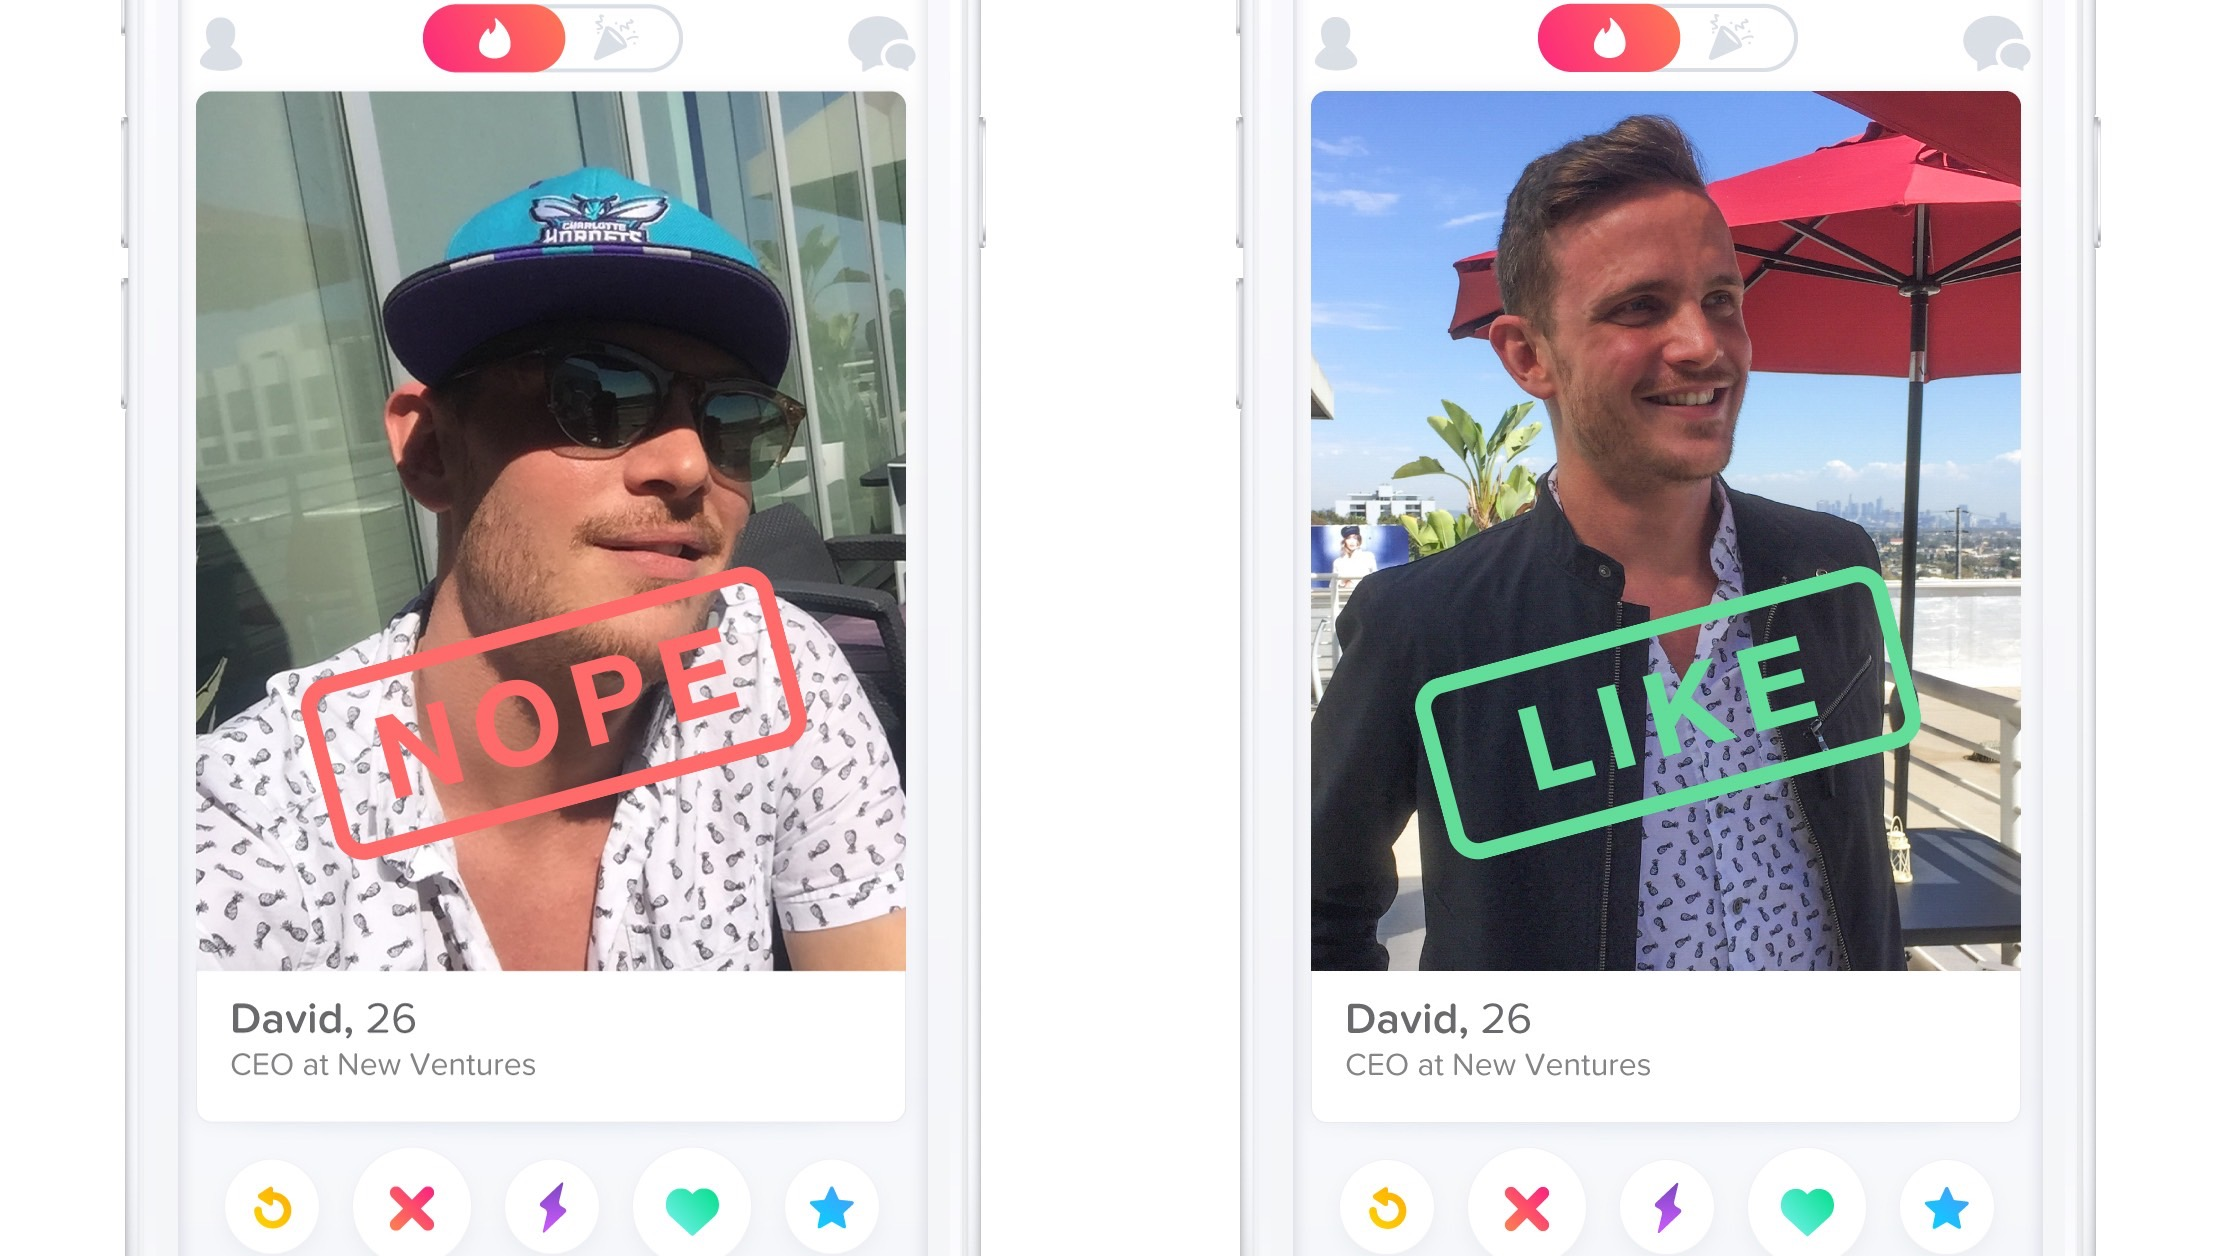 How to see who liked me on tinder